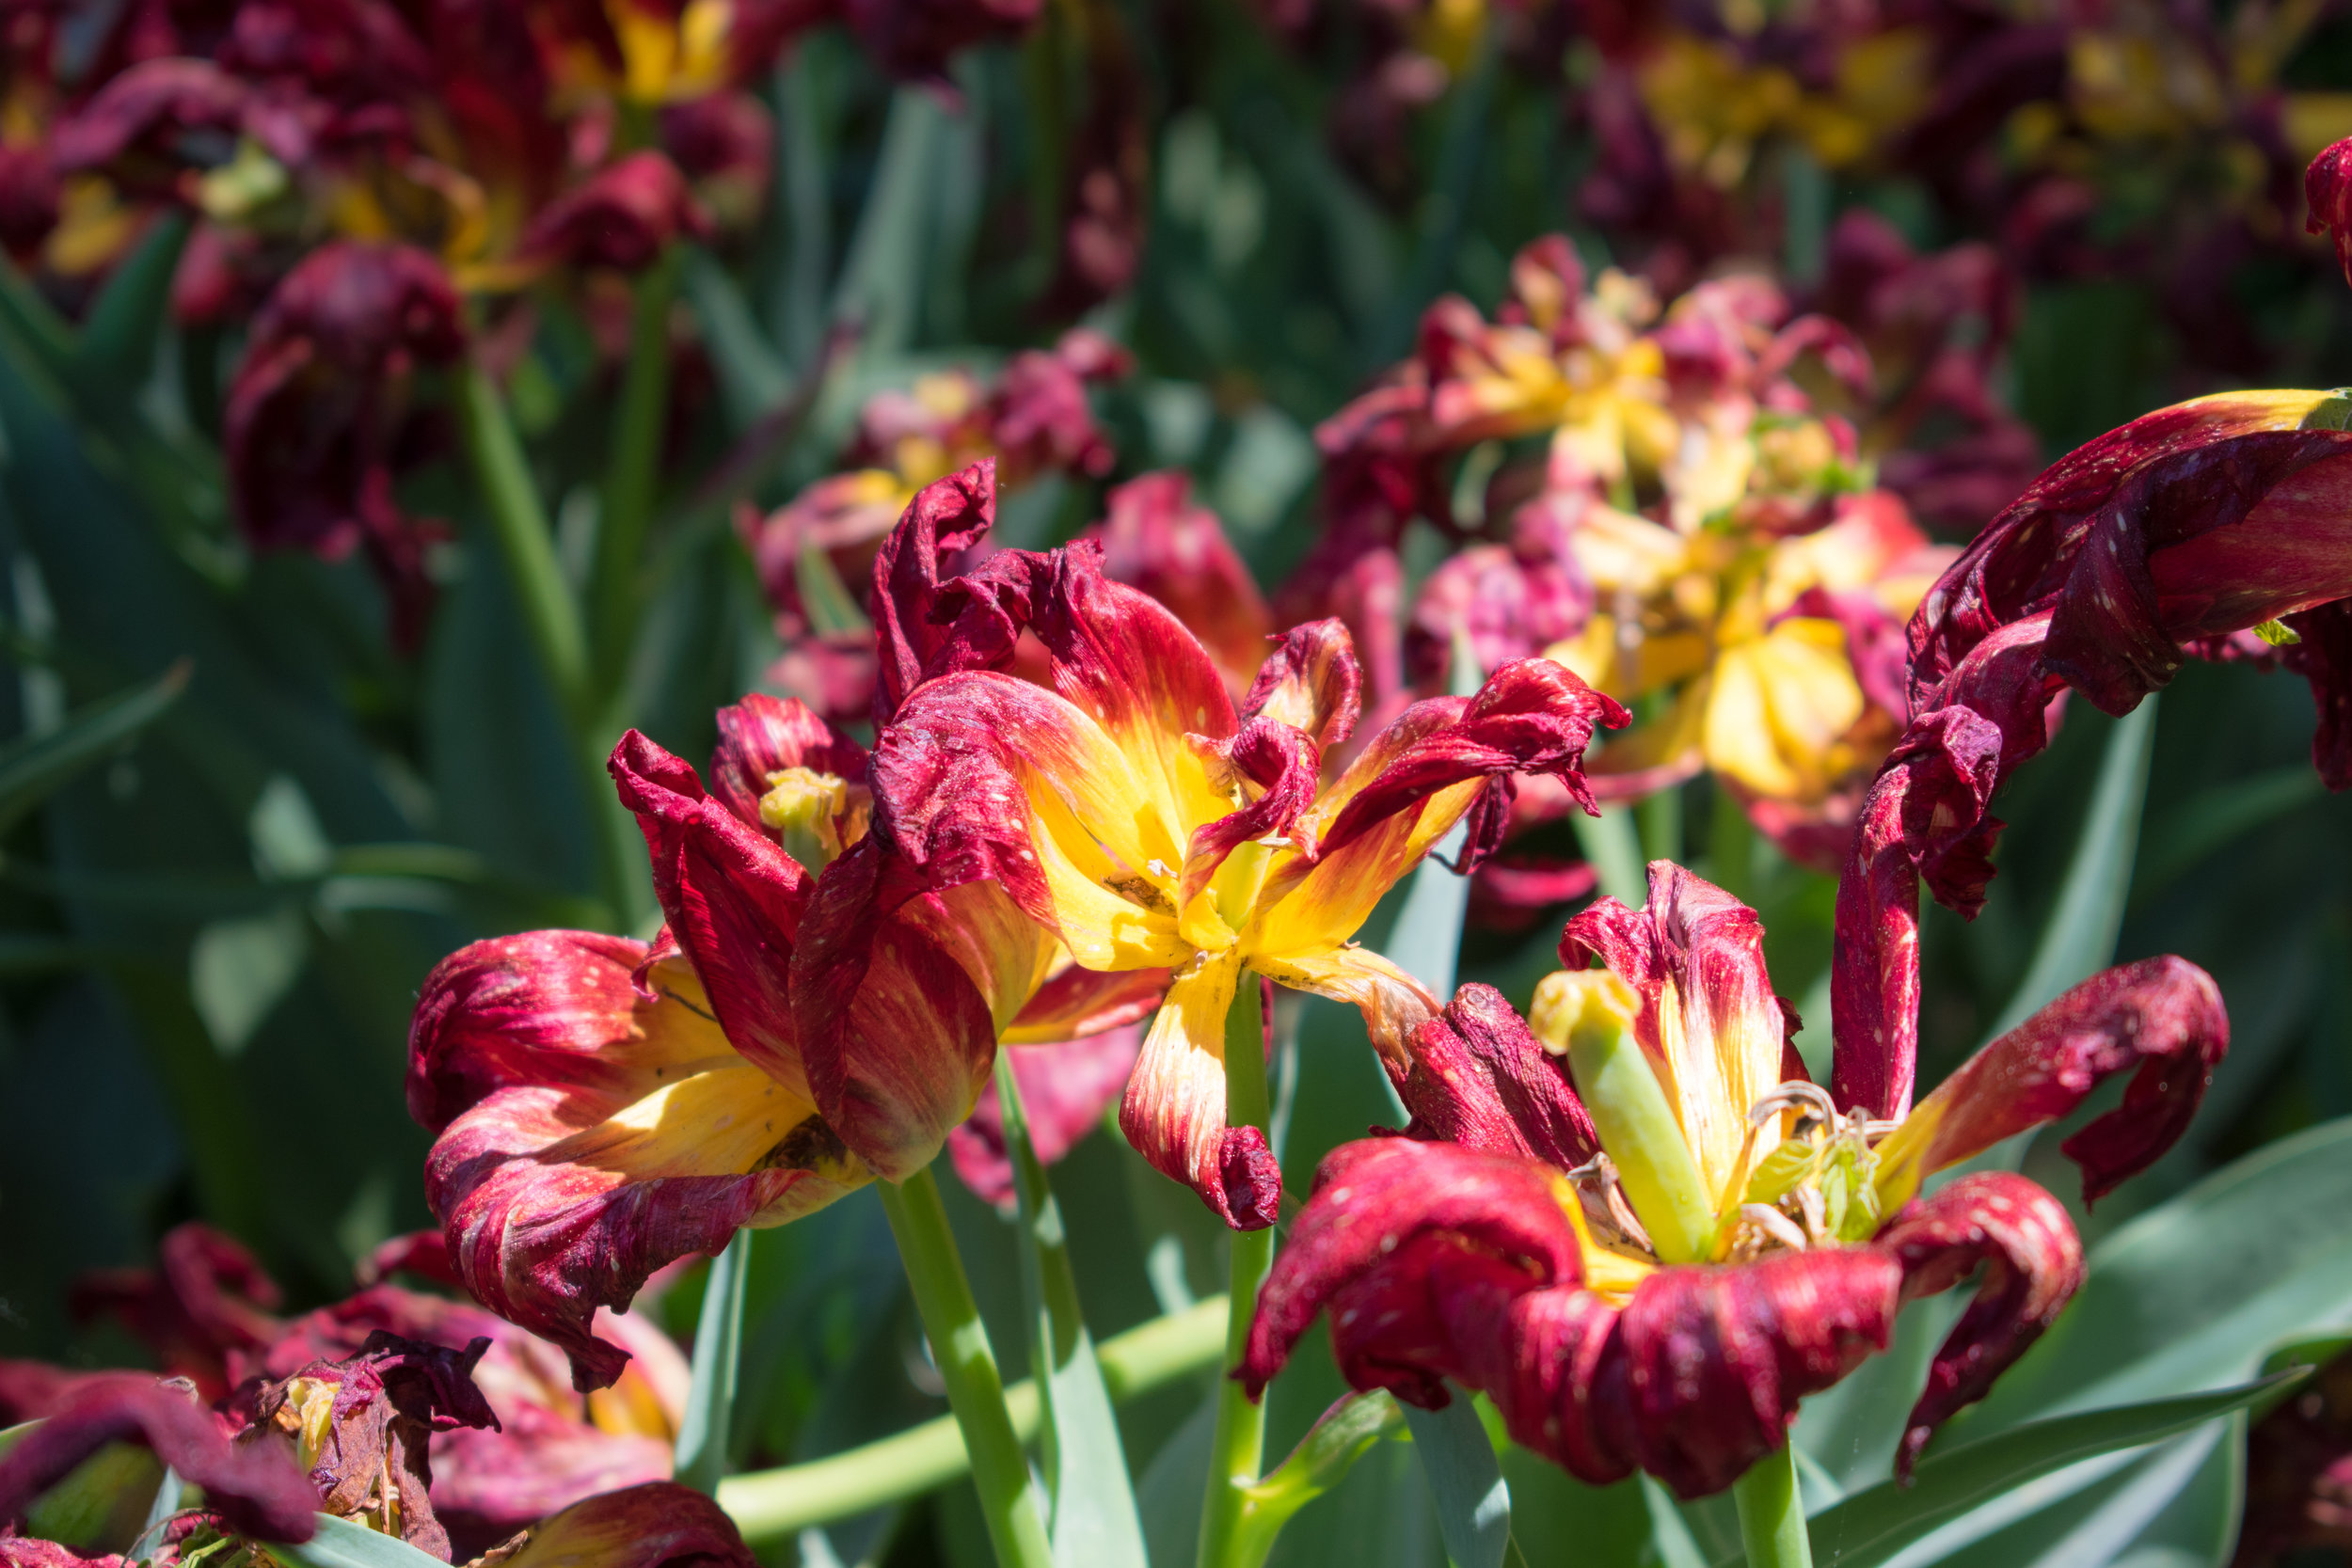 Withering Tulips in The Brooklyn Botanical Garden in New York